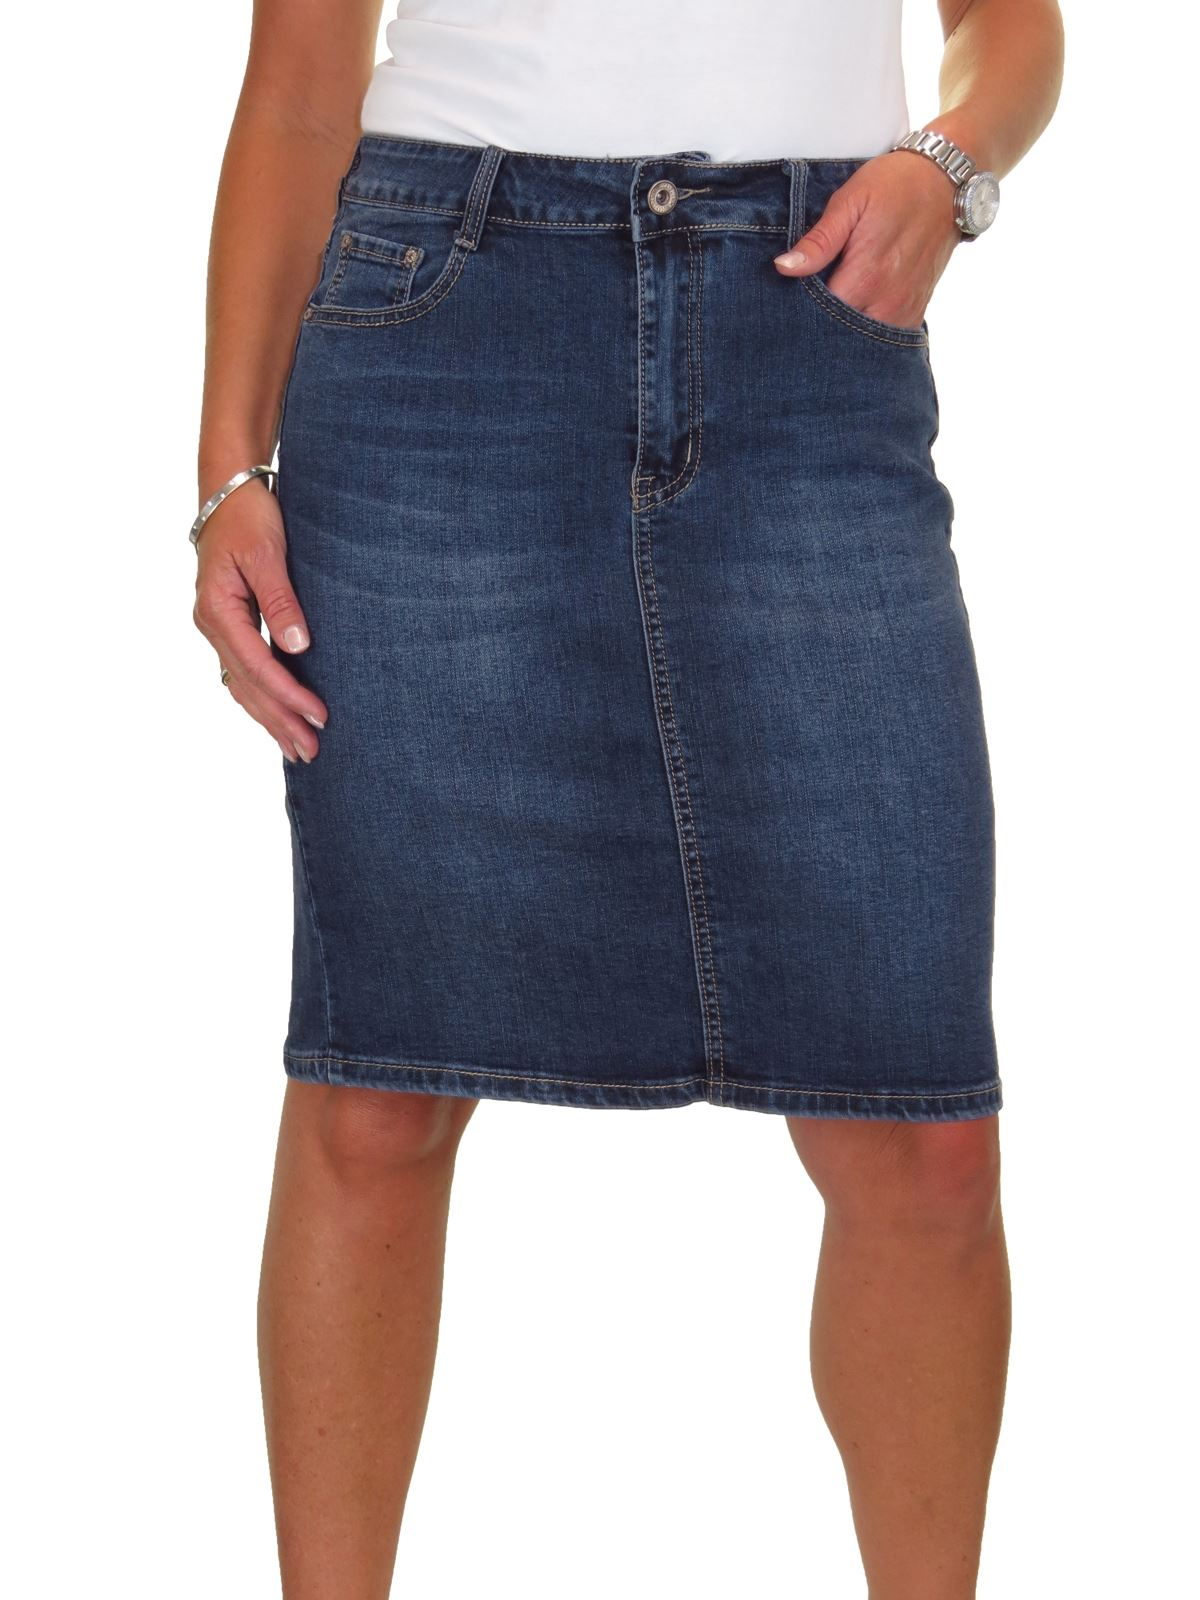 ICE-Stretch-Denim-Above-Knee-Jeans-Pencil-Skirt-Faded-Wash-10-18 thumbnail 5